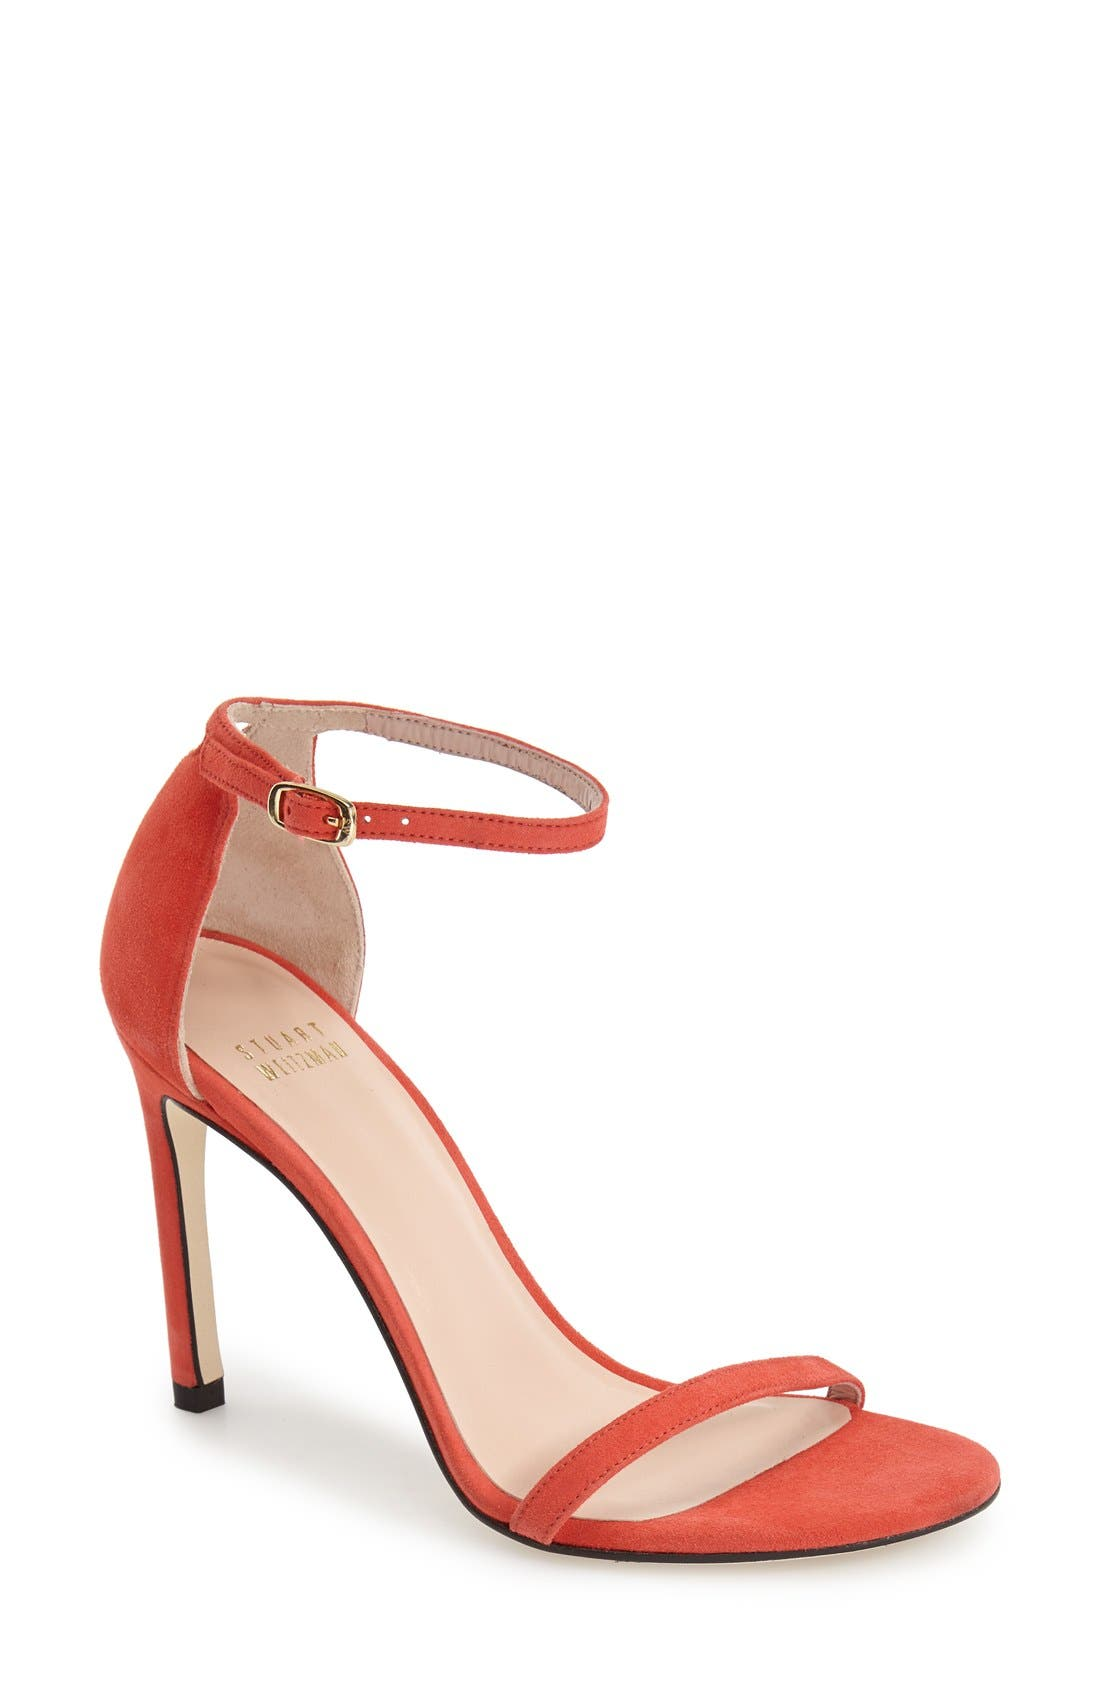 Nudistsong Ankle Strap Sandal,                             Main thumbnail 36, color,